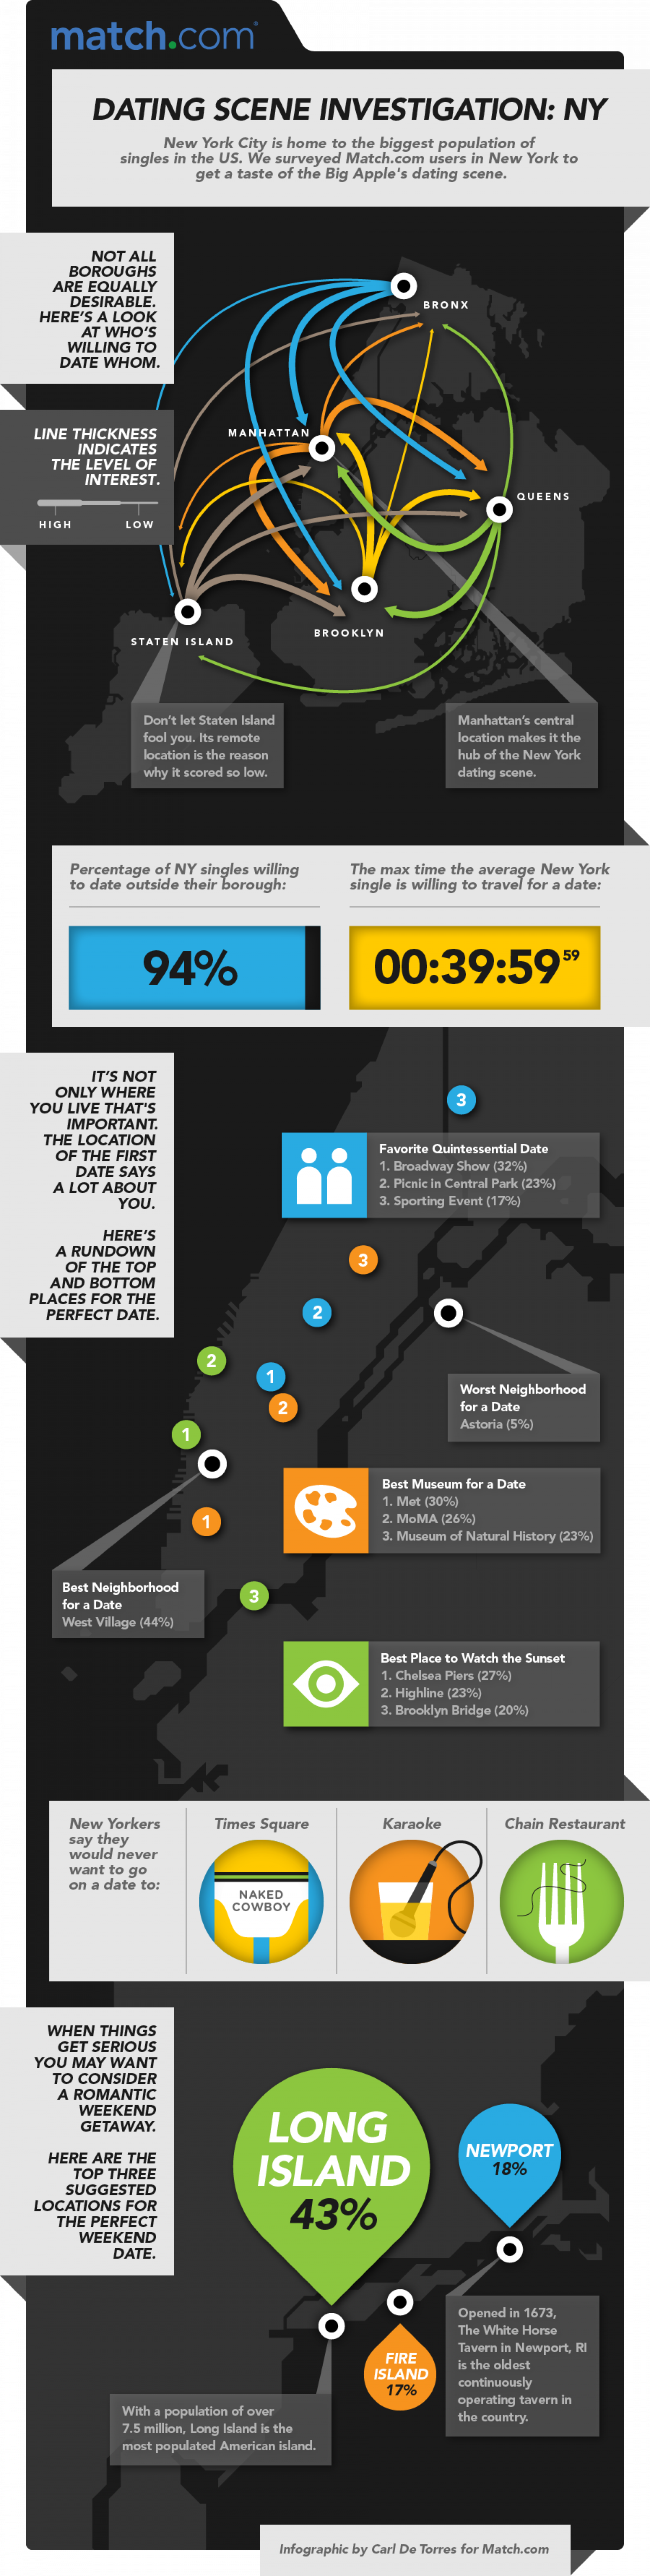 Worst Place to Take a Date: Astoria?! Infographic